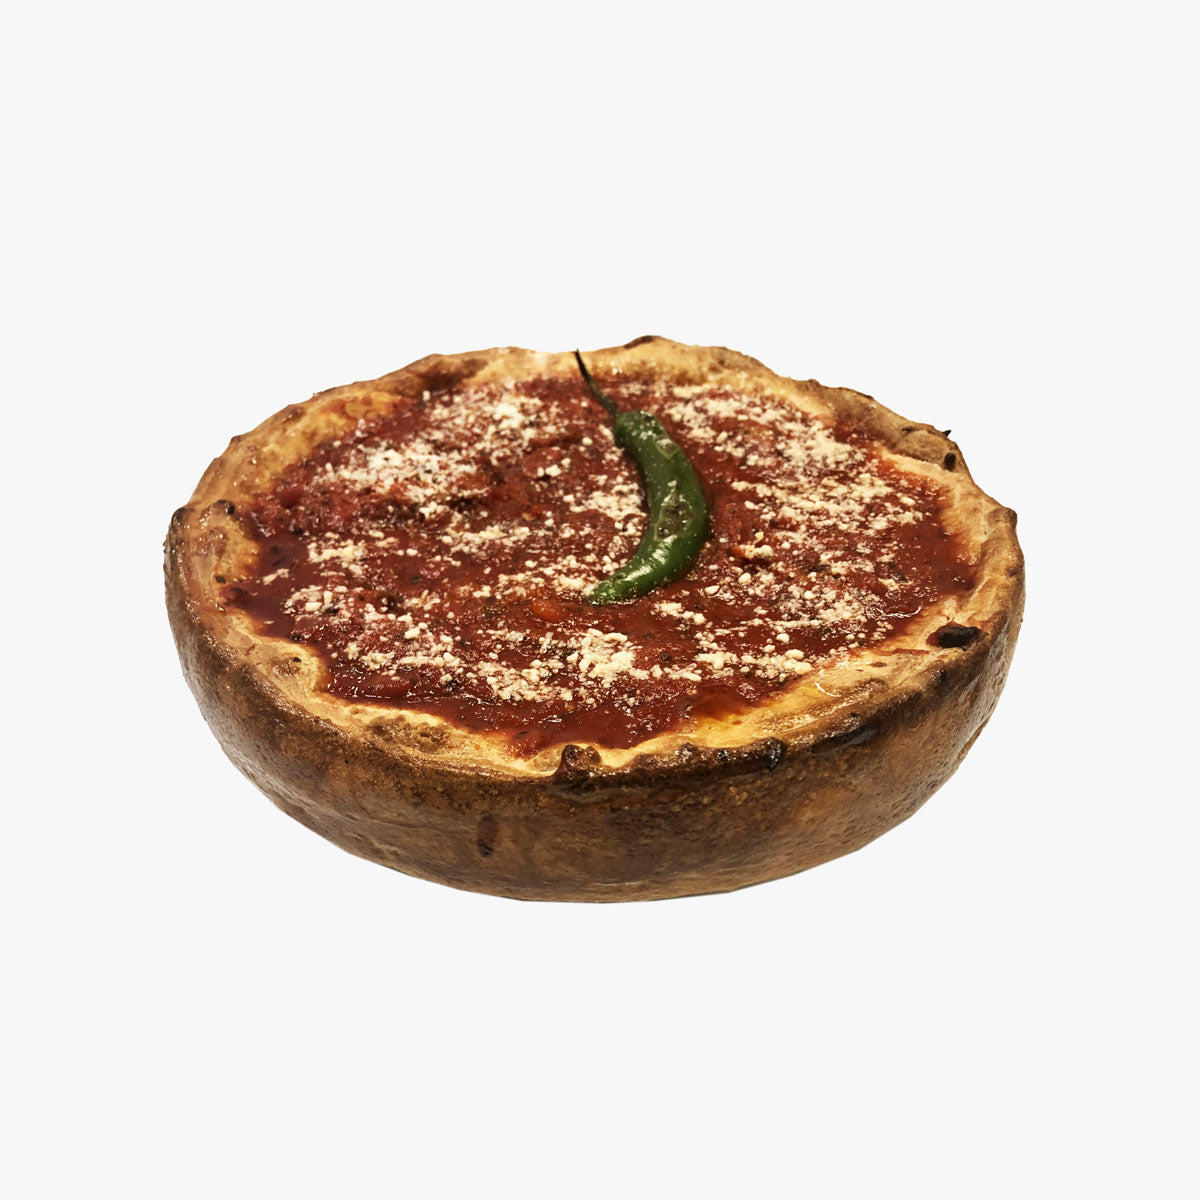 Chili-Chicago Deep-dish